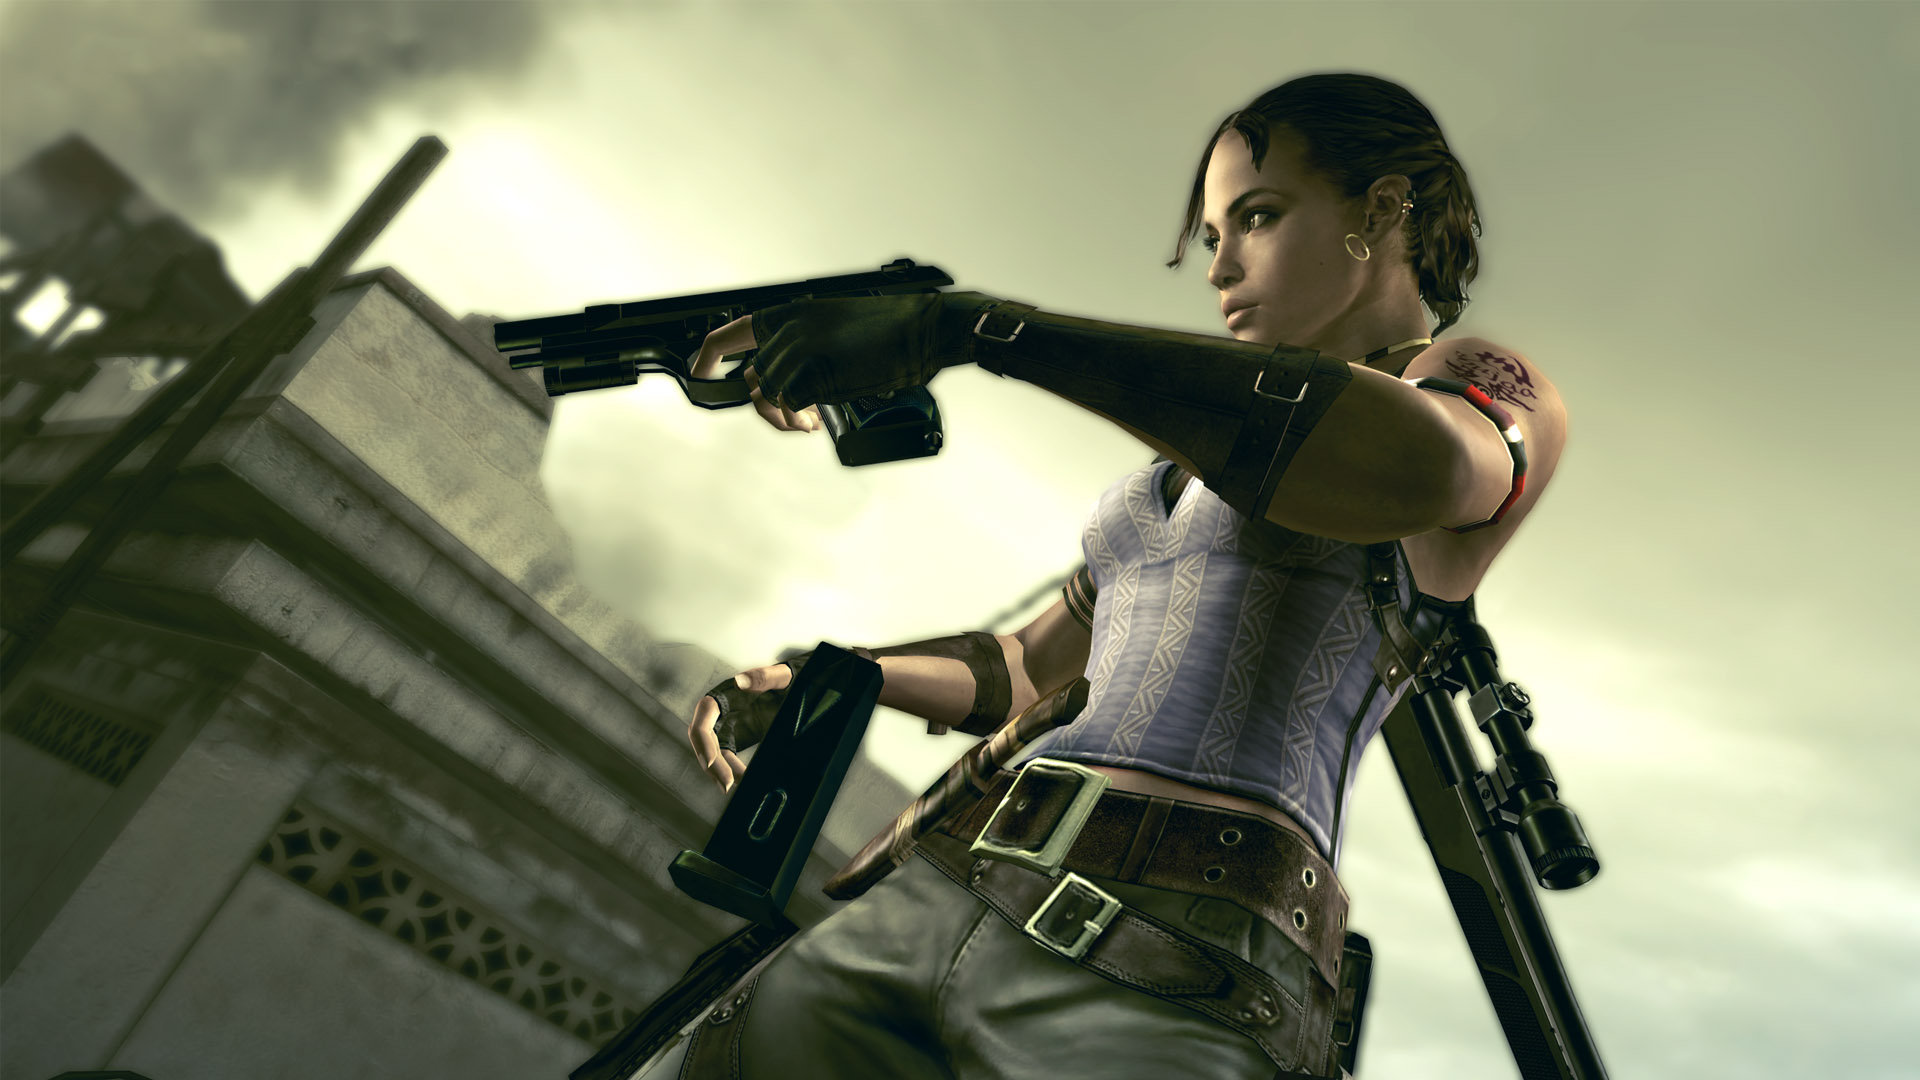 resident evil 5 full movie in hindi free download torrent